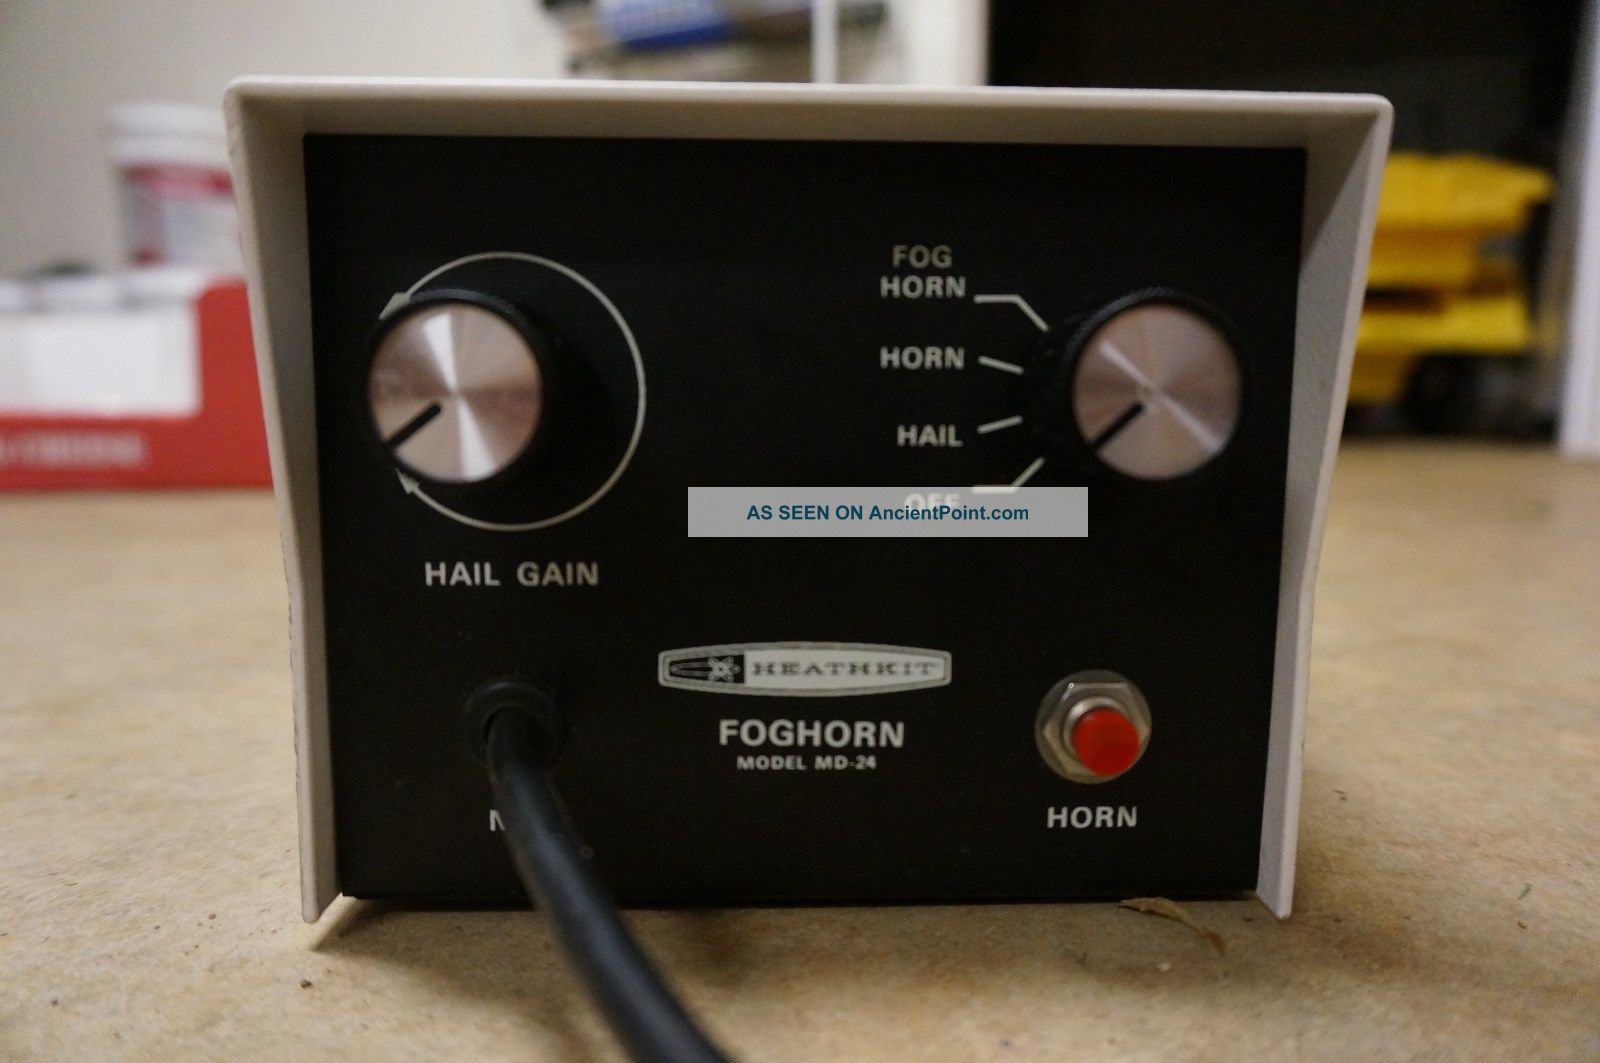 Heathkit Model Md - 24 Antique 30w Foghorn Hailer Horn With Microphone Other photo